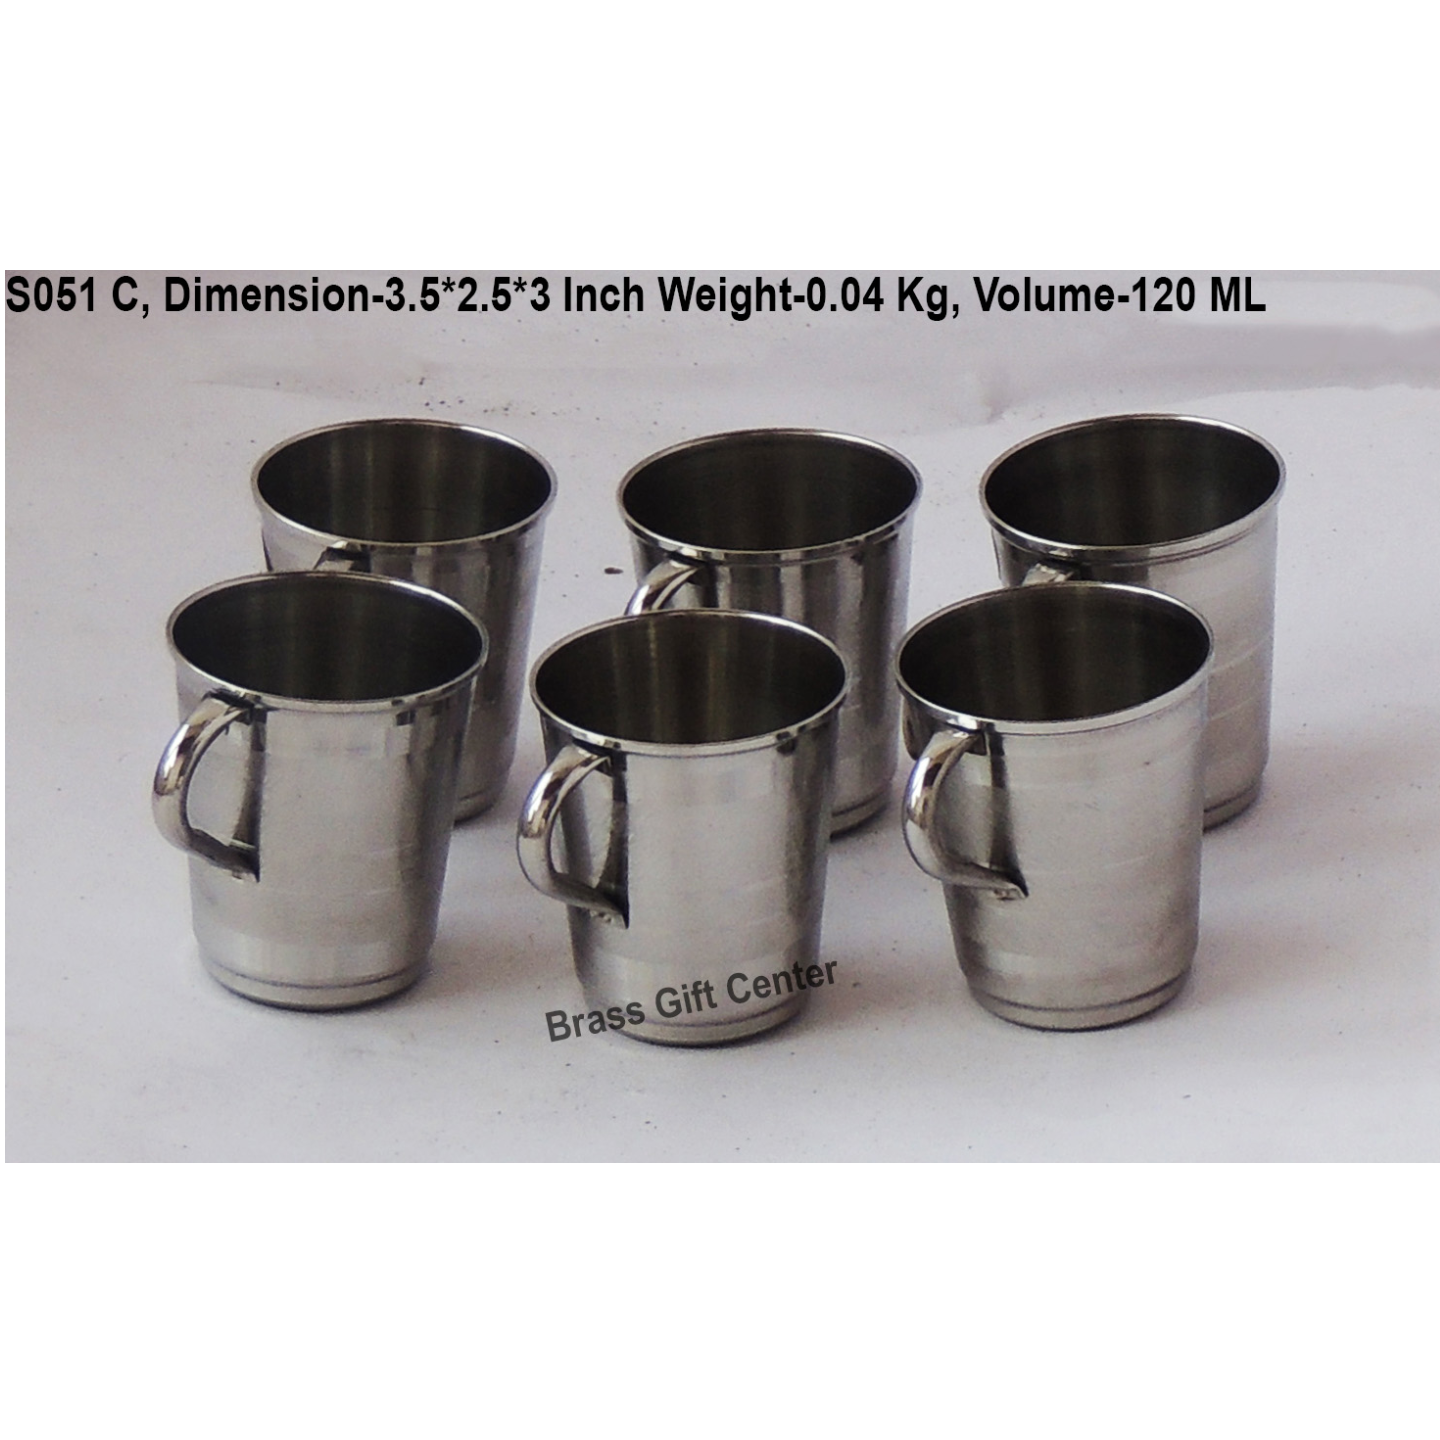 Steel Water Drinking Cup, Set of 6 Pcs. Height 3 Inch (S051 C)